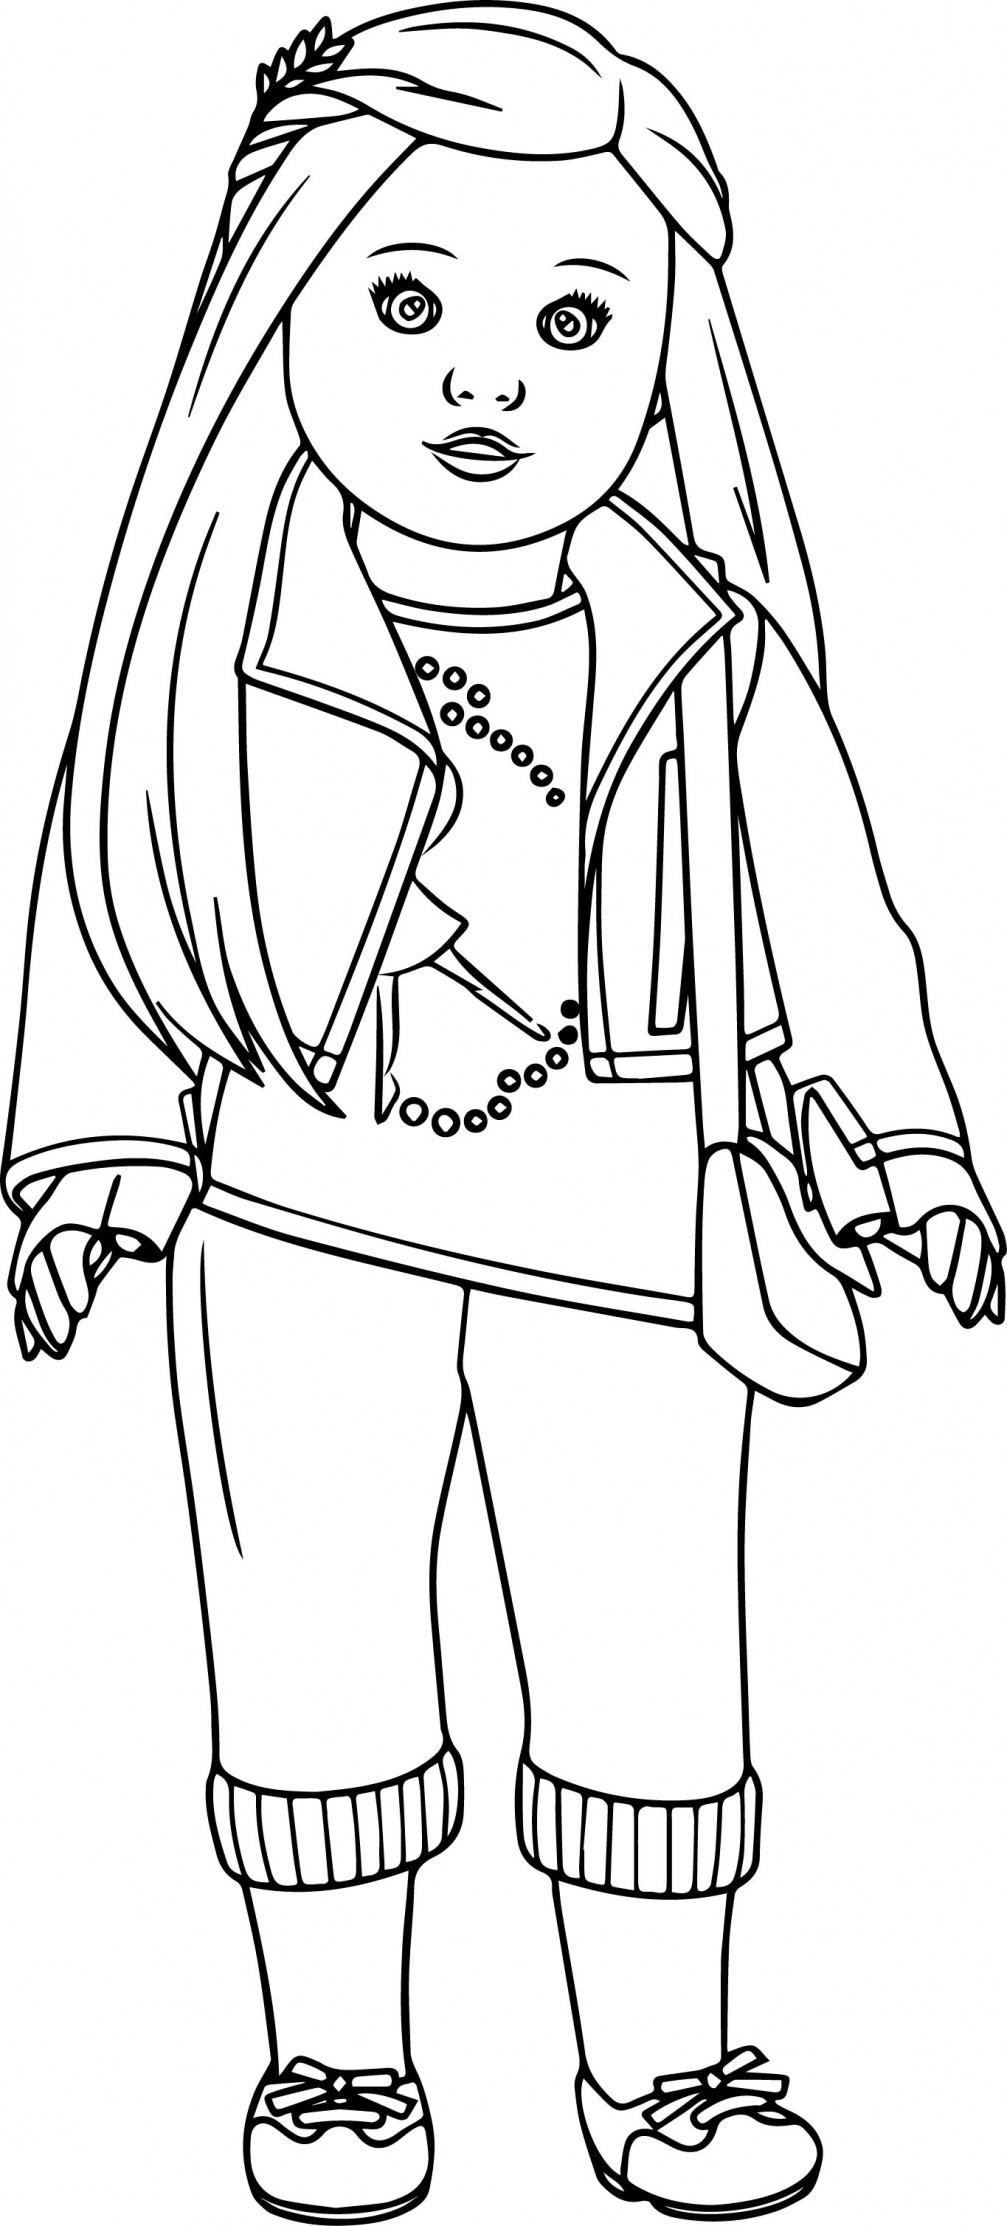 American Girl Lea Coloring Pages  Doll clipart coloring page Pencil and in color doll